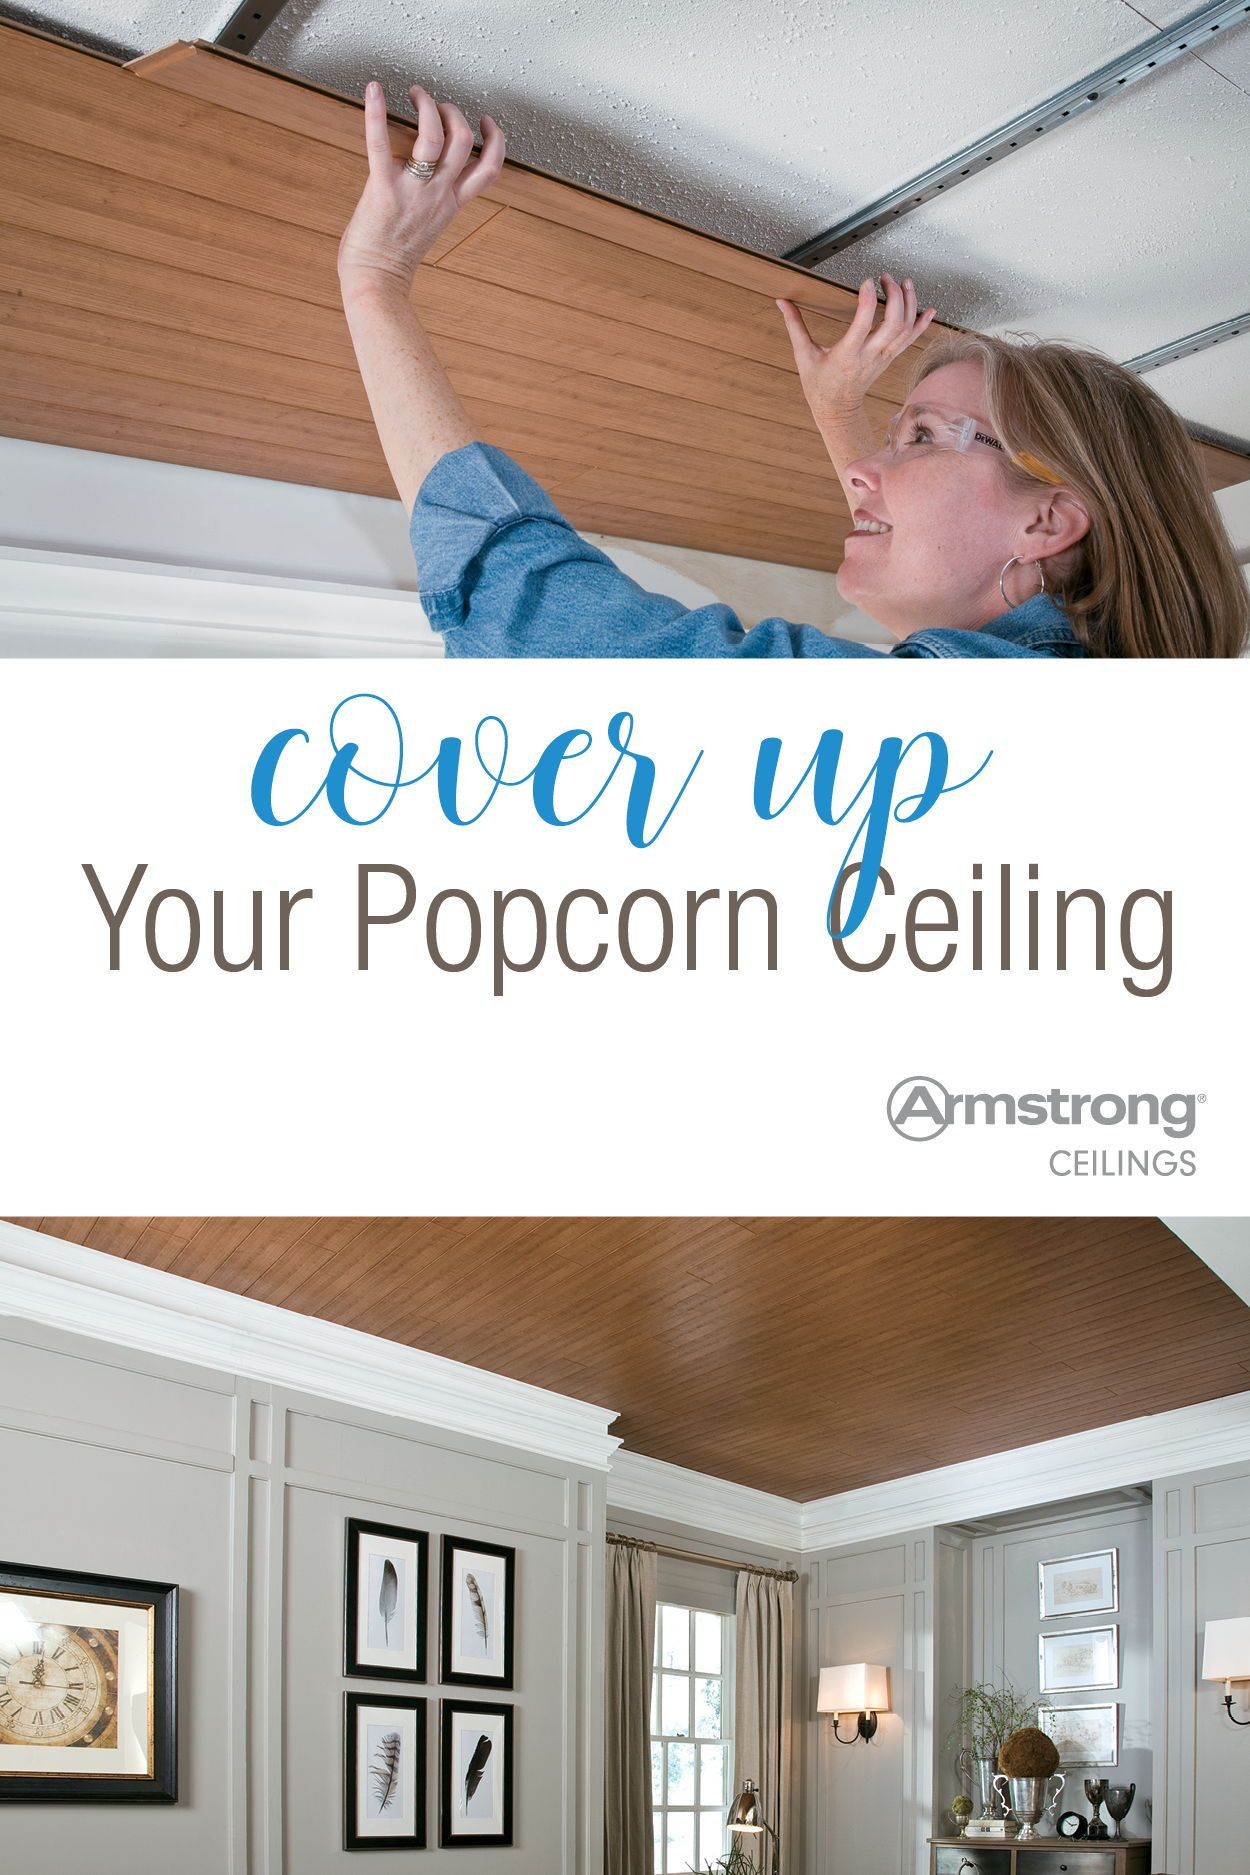 Cover Popcorn Ceilings Ceilings Armstrong Residential Covering Popcorn Ceiling Popcorn Ceiling Armstrong Ceiling